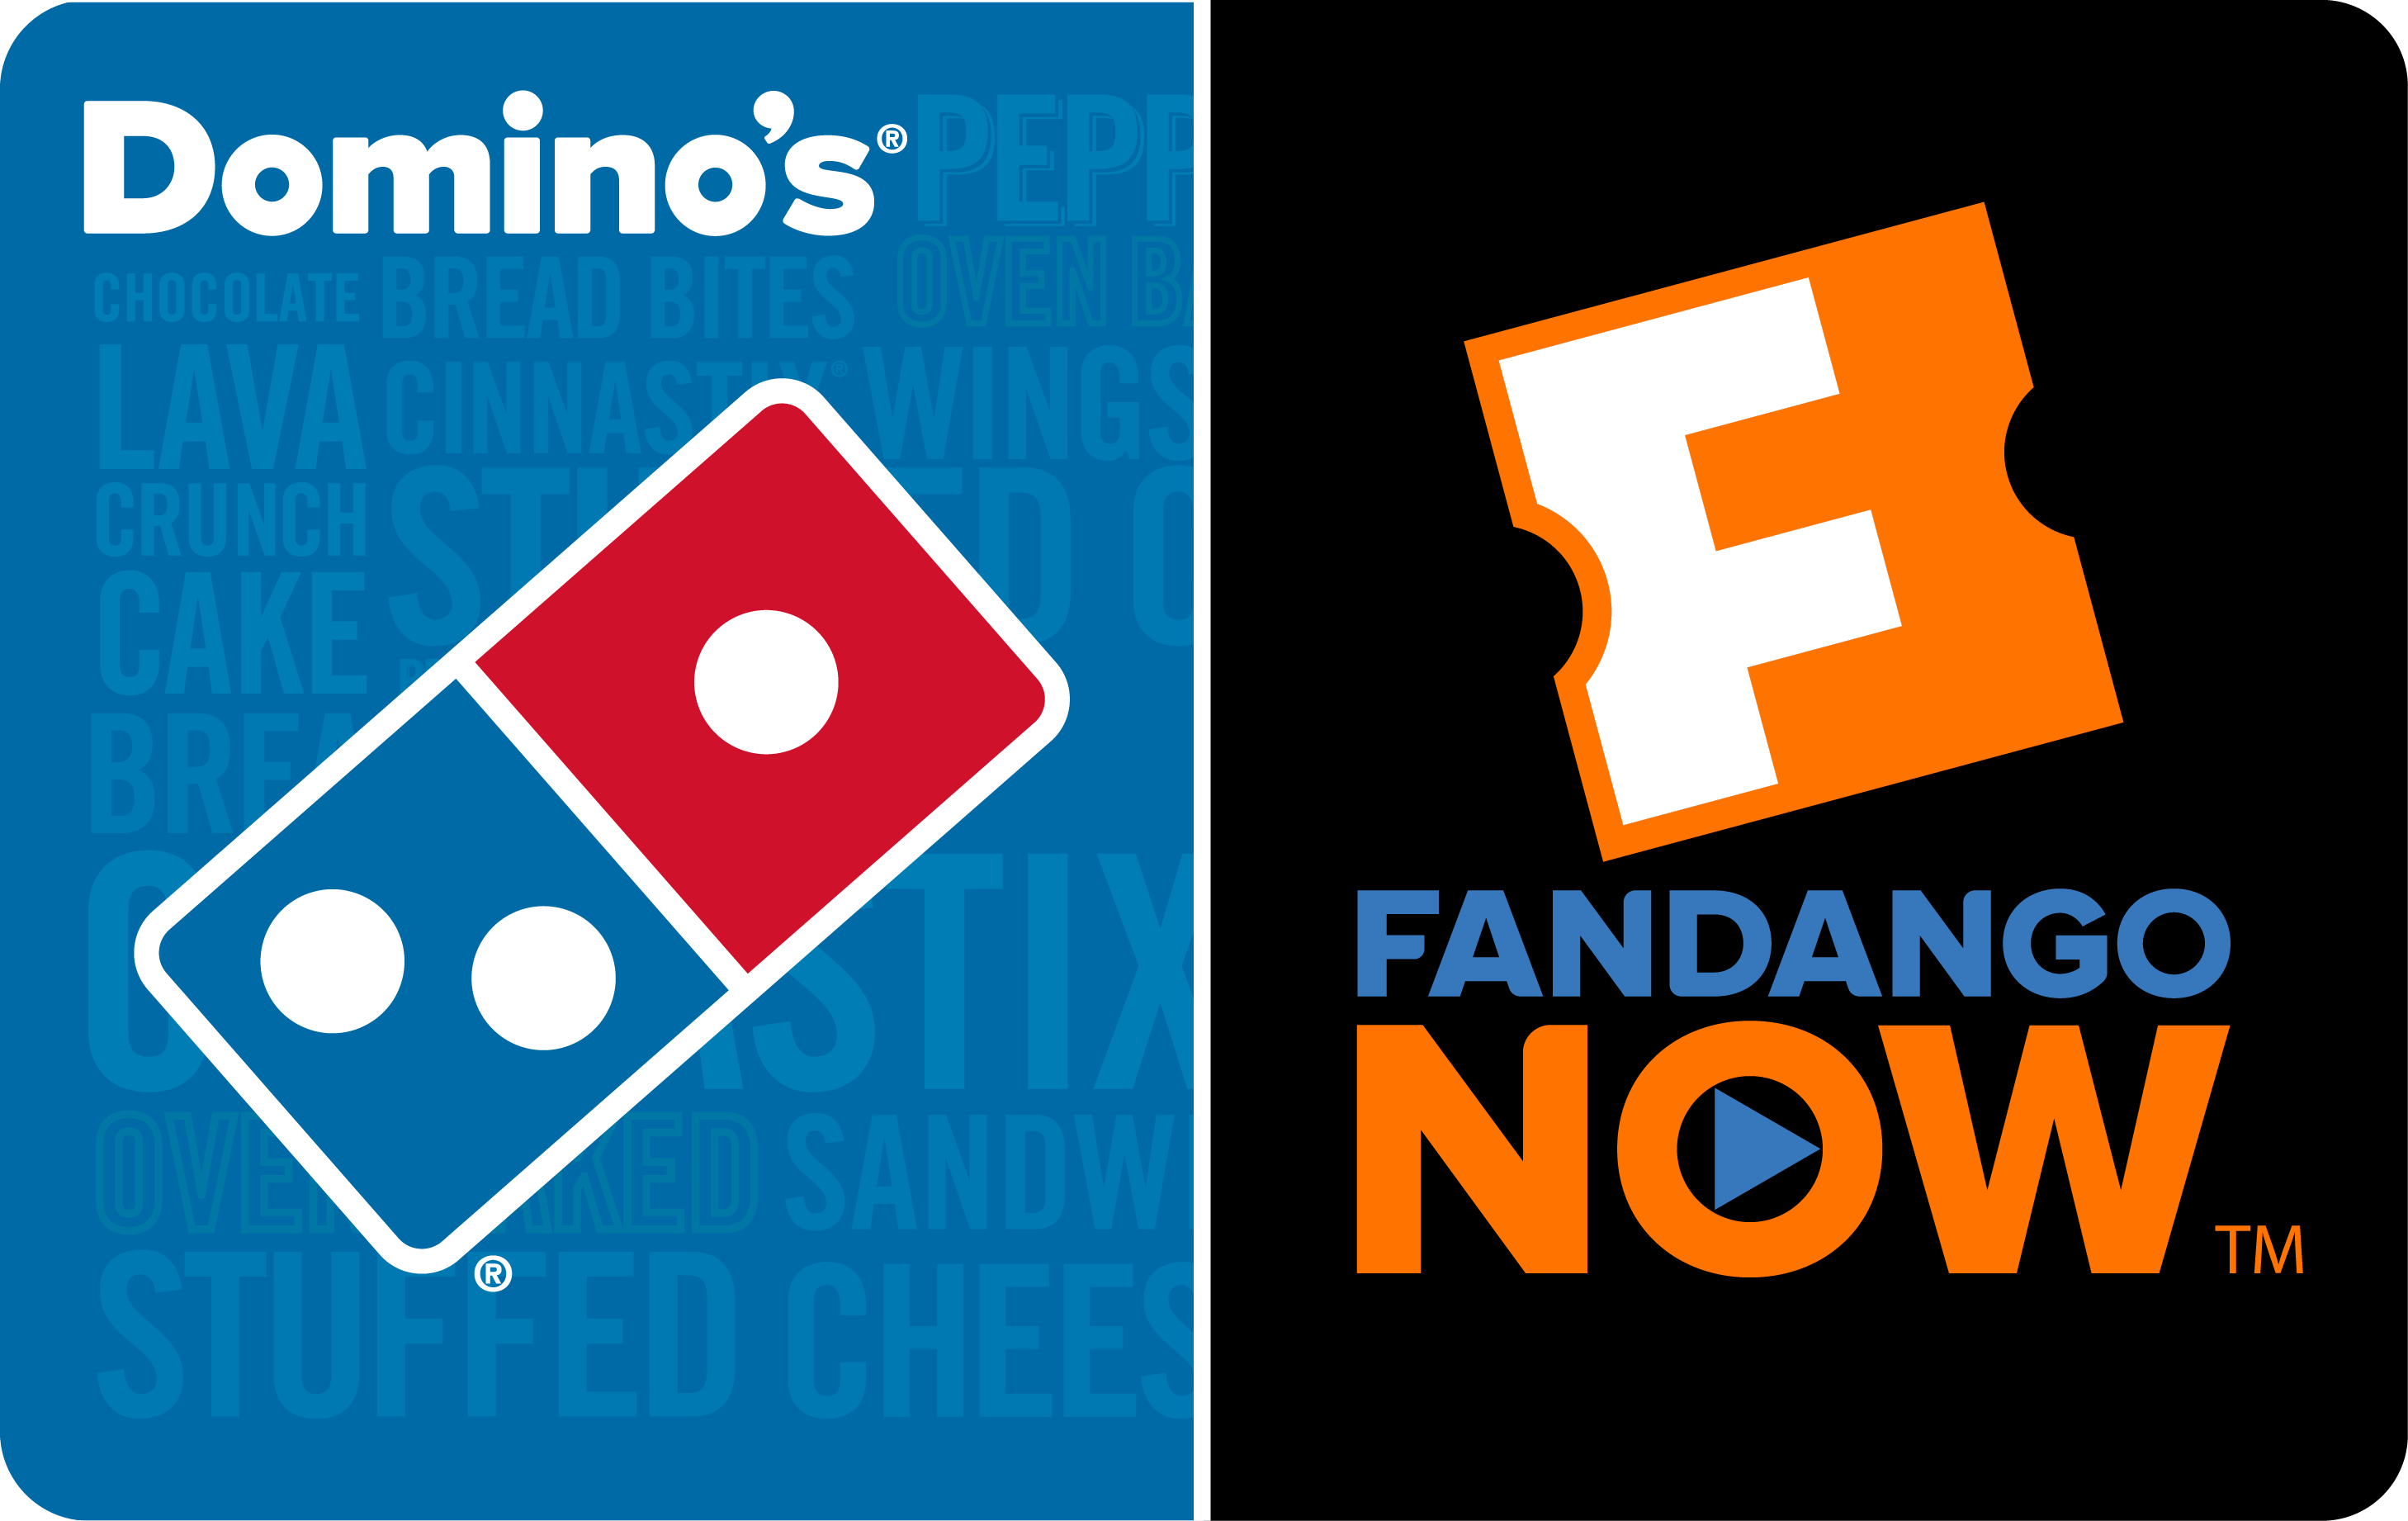 Value! Buy a $25 Domino's Gift Card Get a FandangoNOW Movie Code* on us.